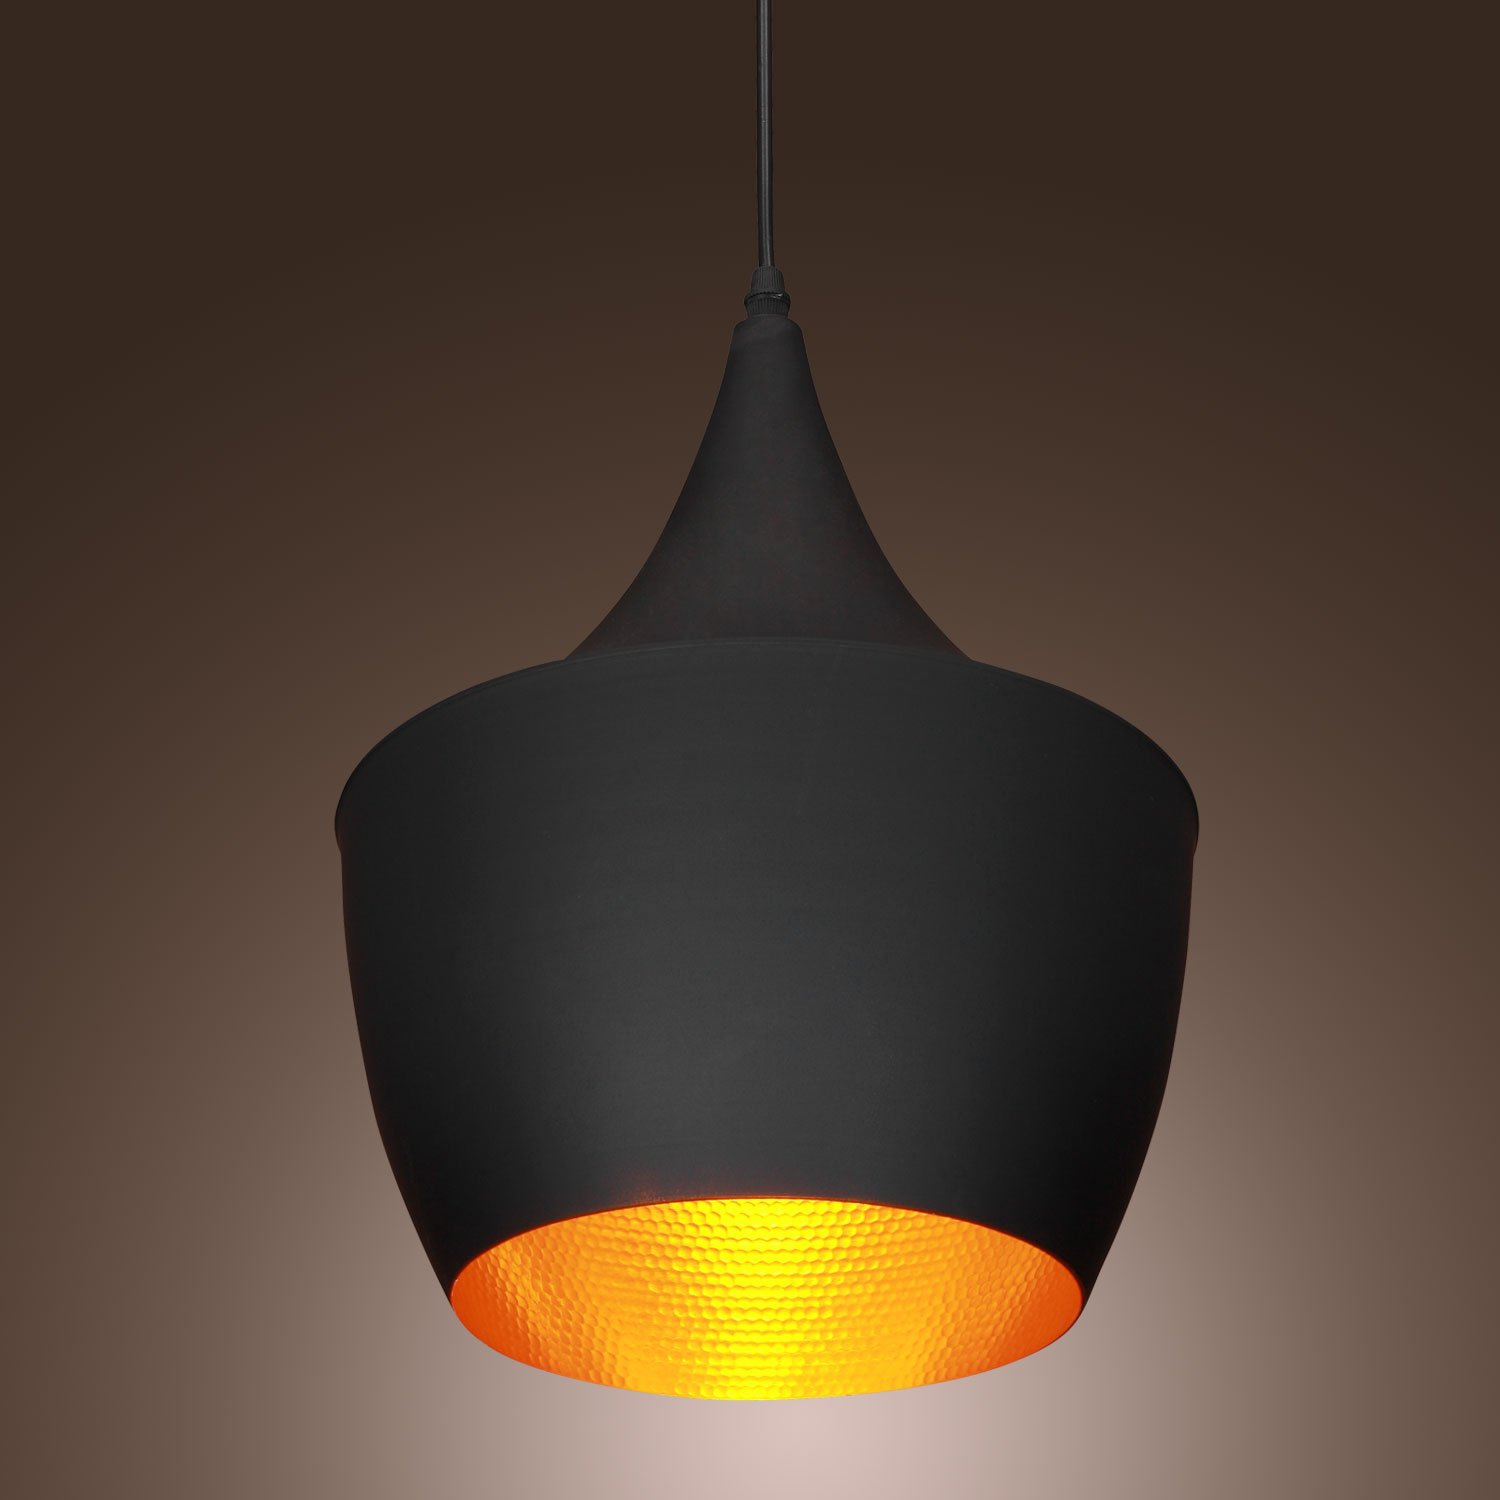 60w pendant light in black shade moderncomtemporary pendant light 60w pendant light in black shade moderncomtemporary pendant light fit for li ceiling pendant fixtures amazon aloadofball Image collections